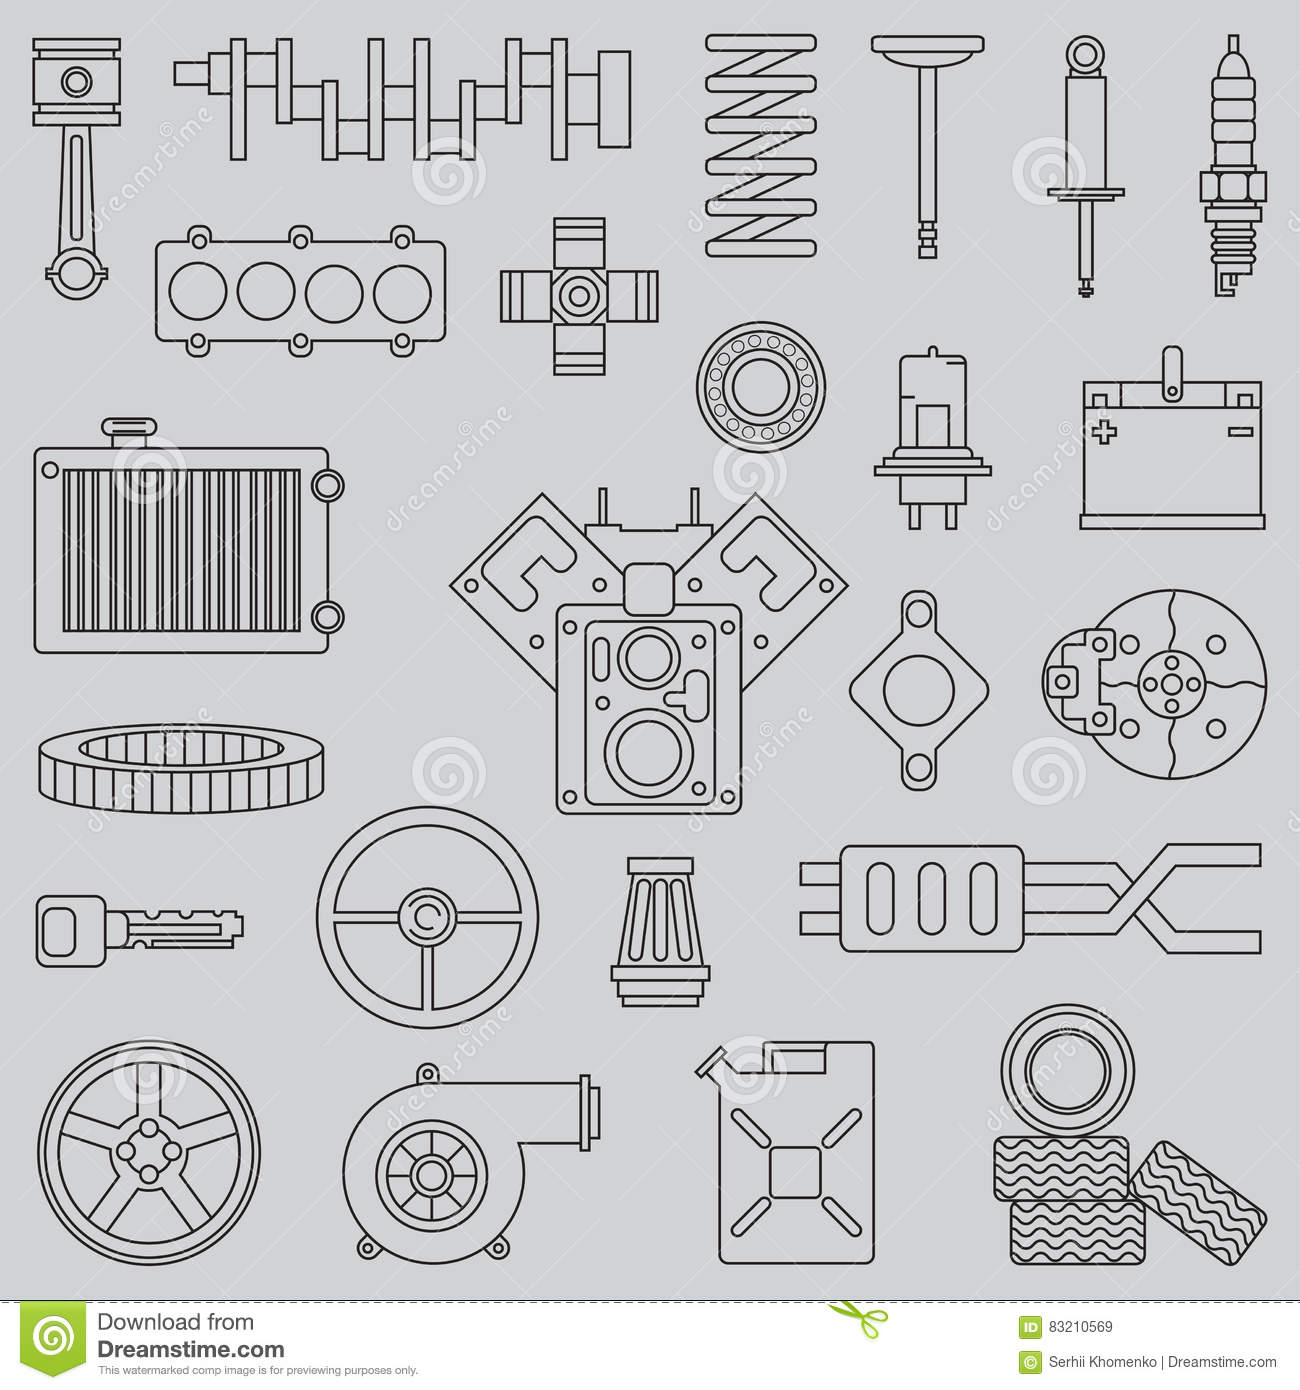 Famous Boiler Diagram Tiny Pot Diagram Regular Hss Wiring Electric Guitar Wire Youthful 2 Humbuckers 1 Volume 1 Tone 3 Way Switch OrangeTsb Automotive Line Flat Vector Icon Car Parts Set With Undercarriage End ..